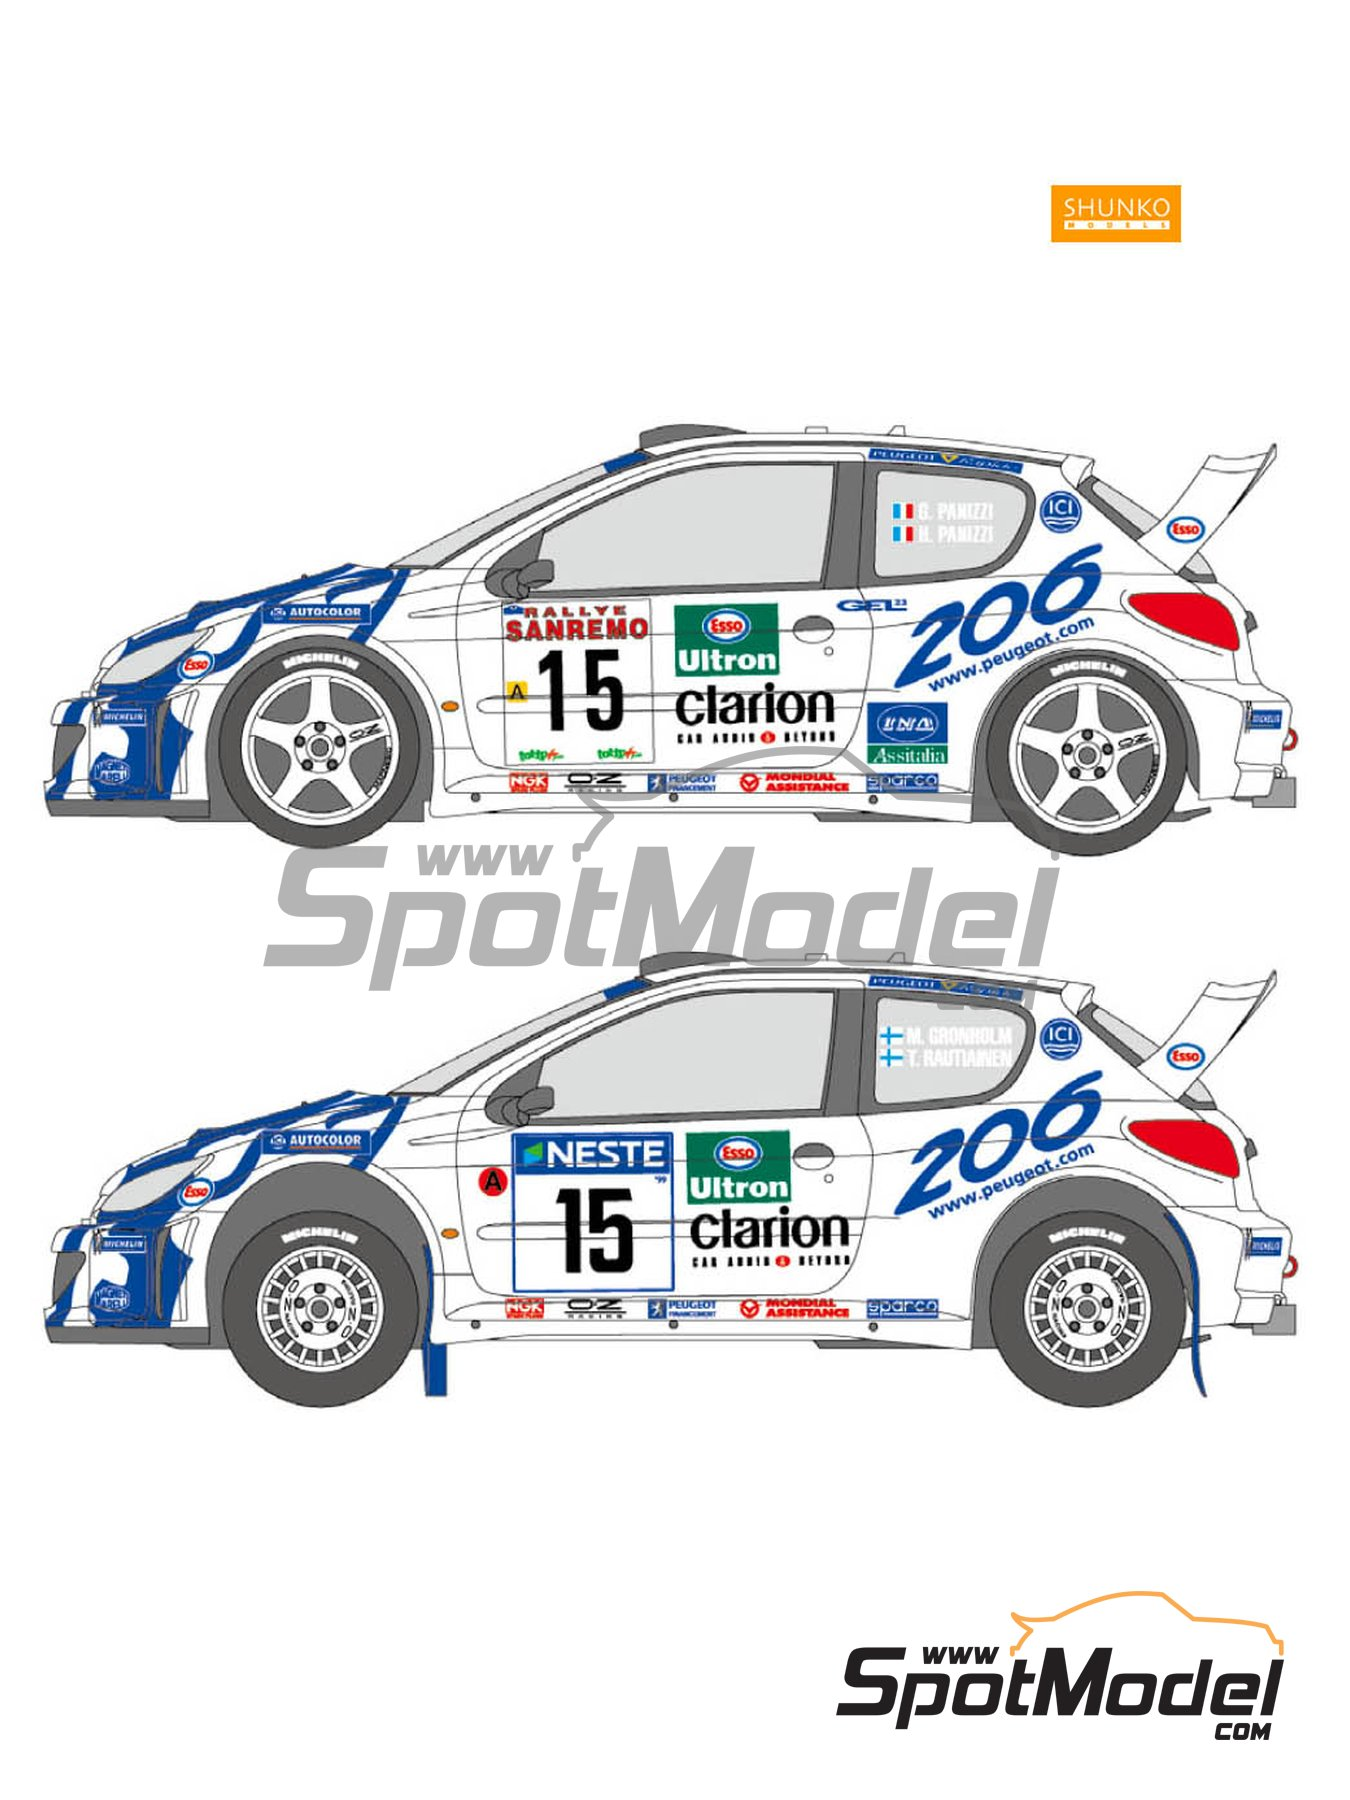 Peugeot 206 WRC Peugeot Works Team - 1000 Lakes Finland Rally, Sanremo Rally 1999 | Marking / livery in 1/24 scale manufactured by Shunko Models (ref. SHK-D347) image